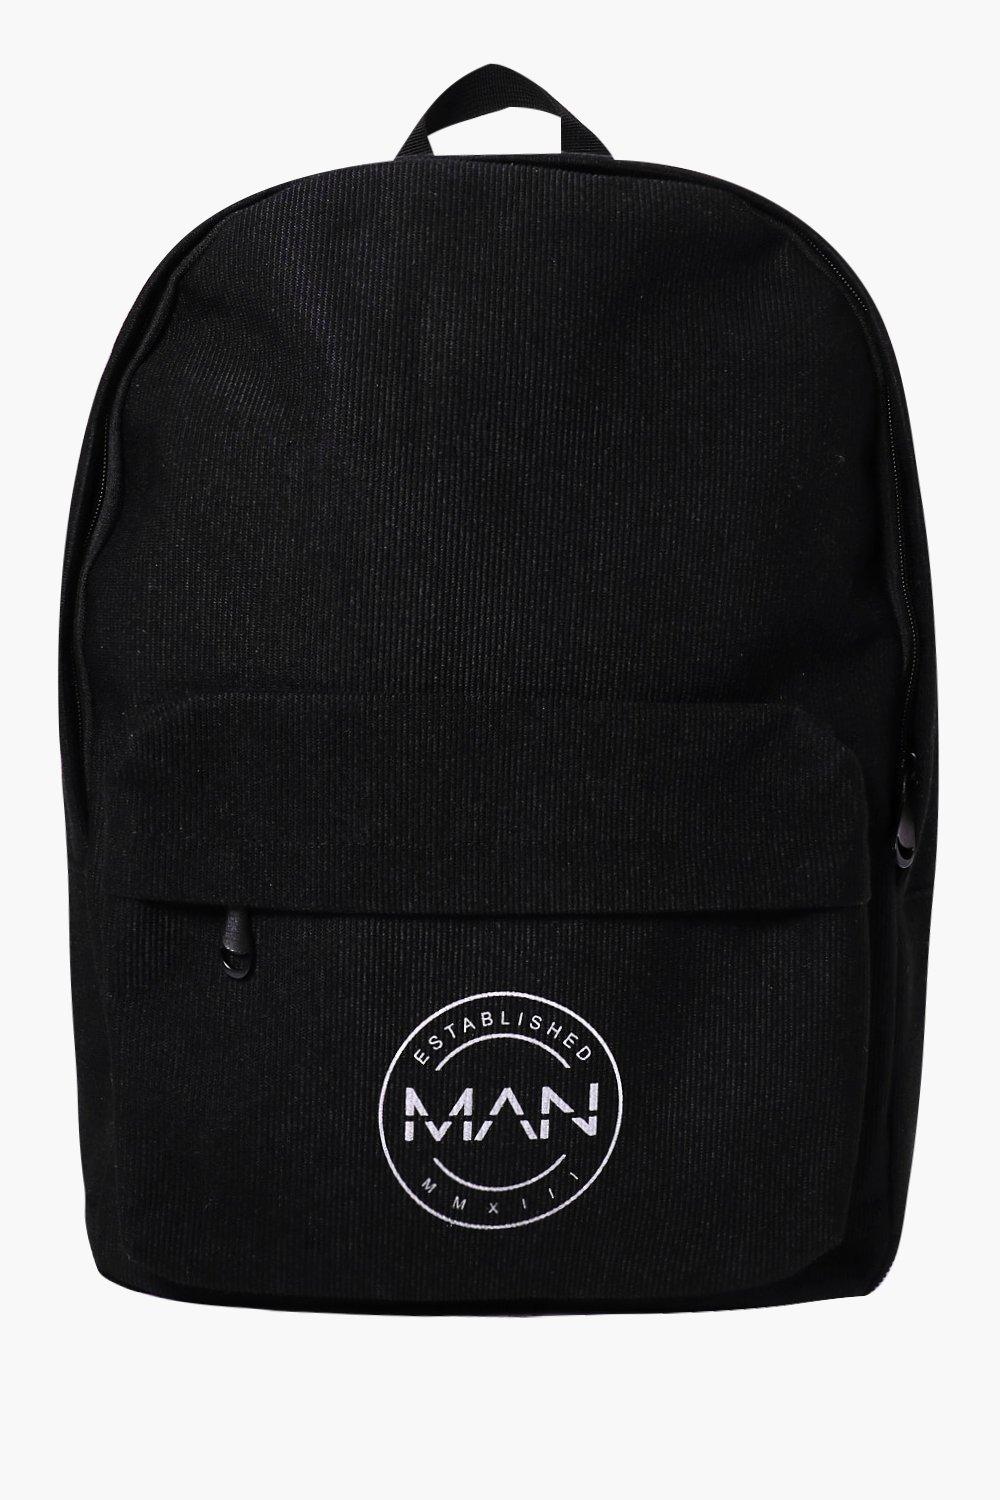 Backpack with Man Logo - black - Black Backpack wi